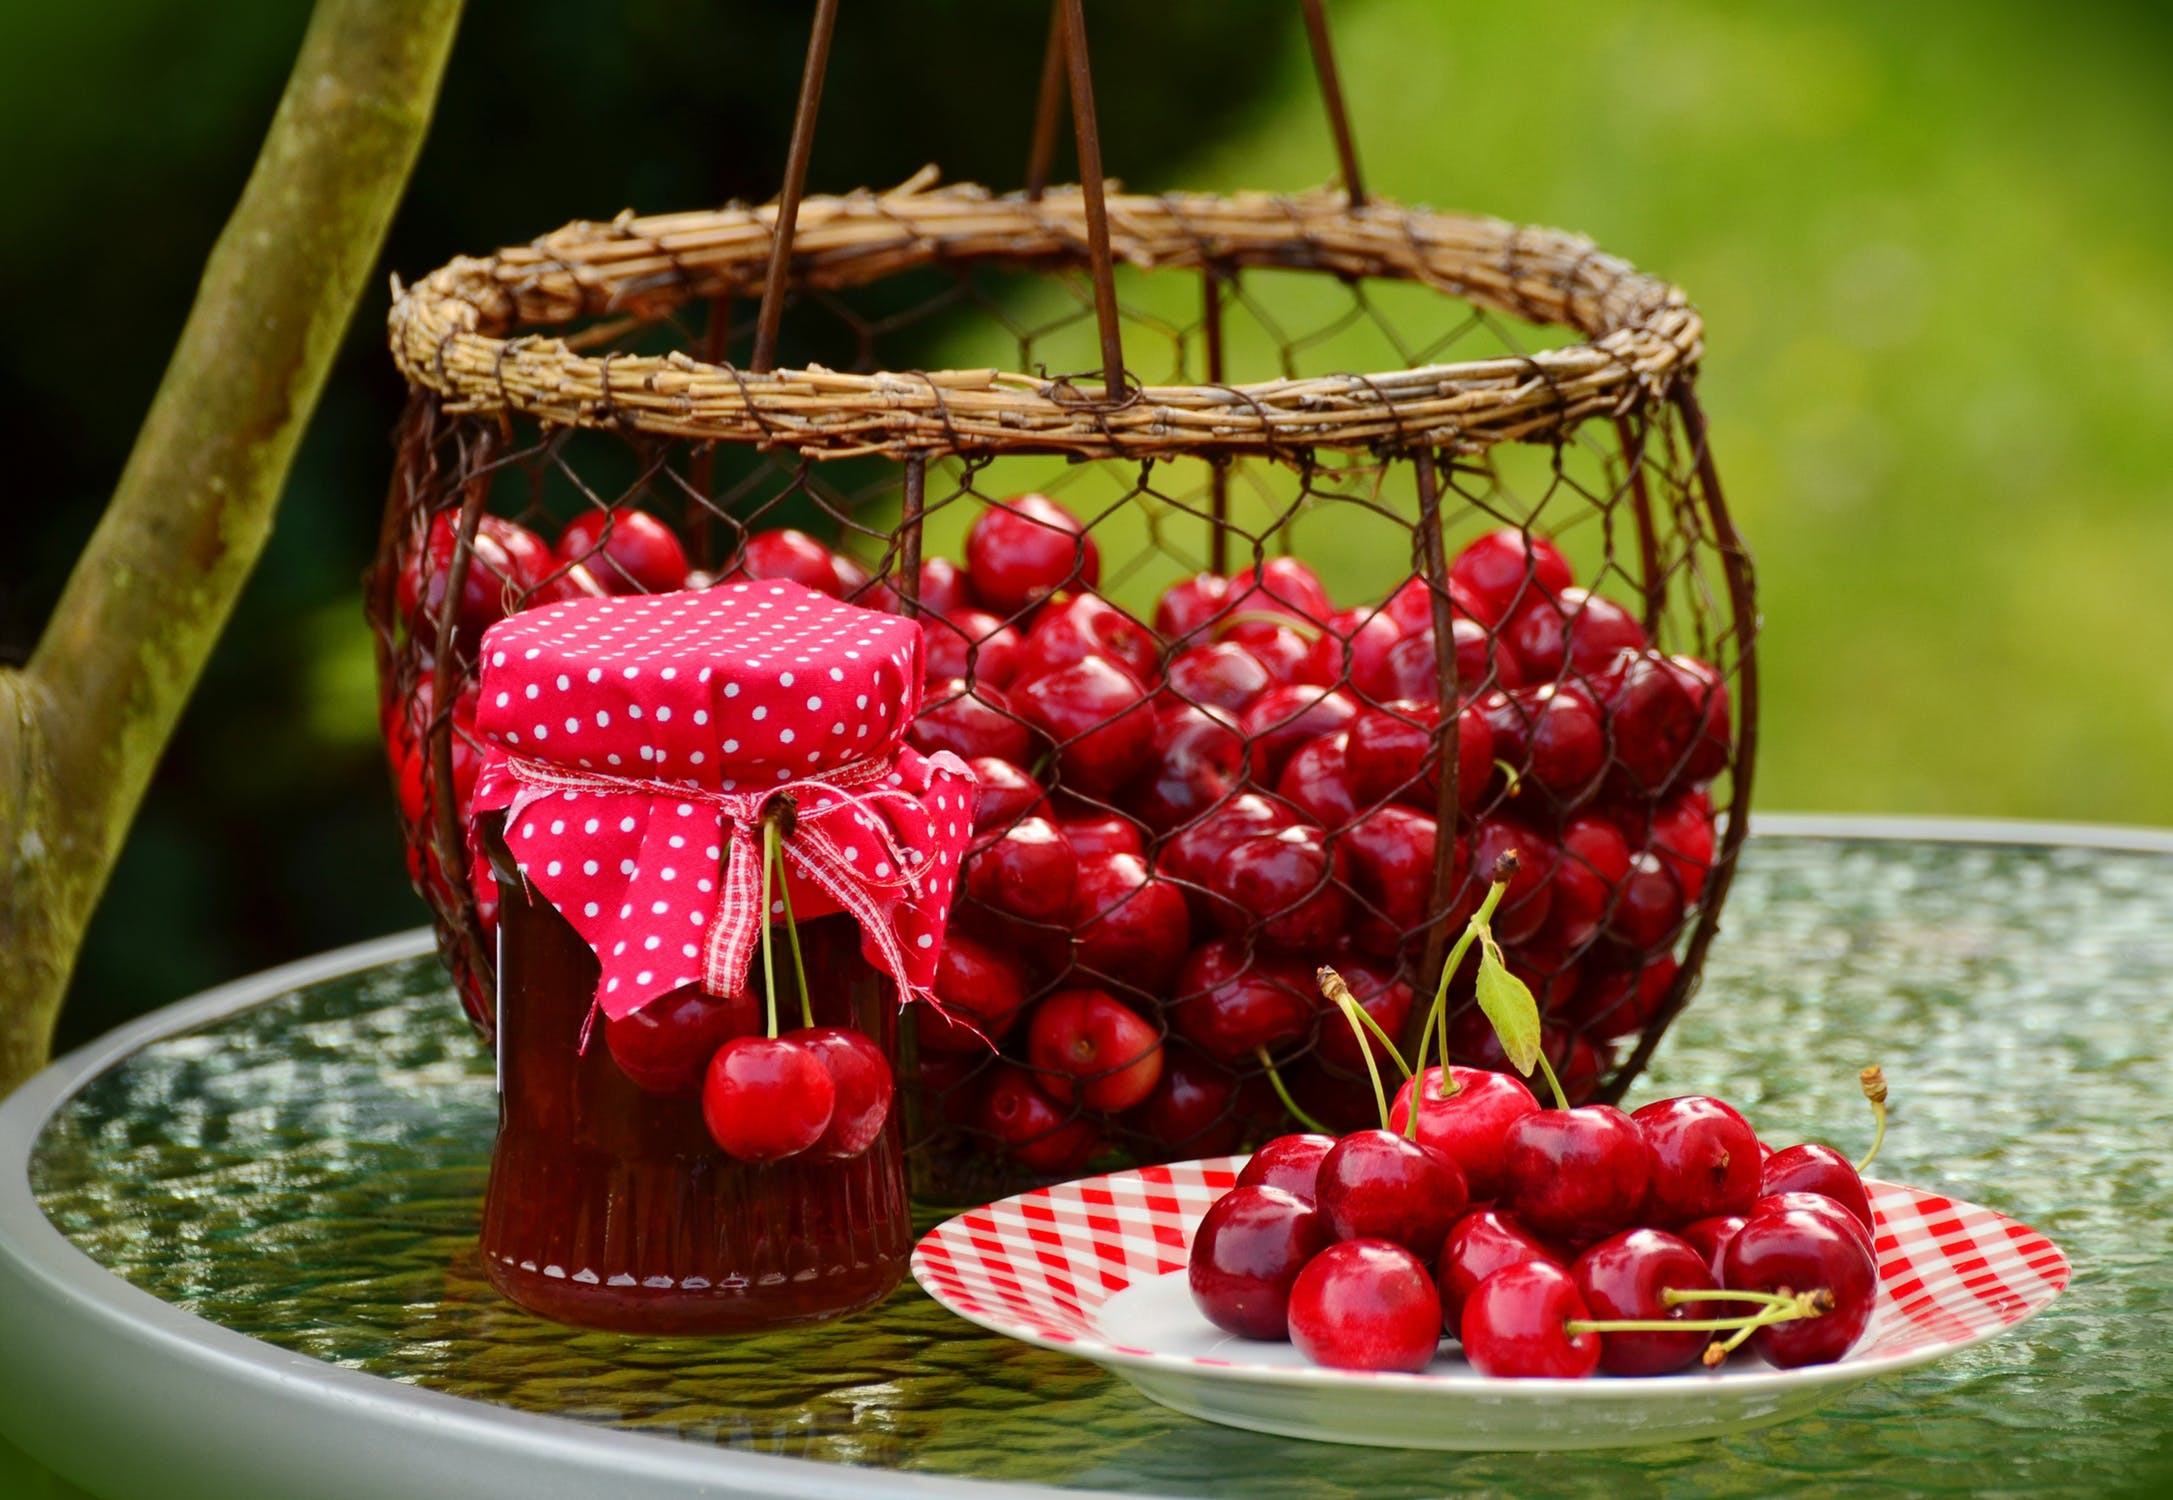 cherries-fruits-sweet-cherry-cherry-jam-162900.jpeg